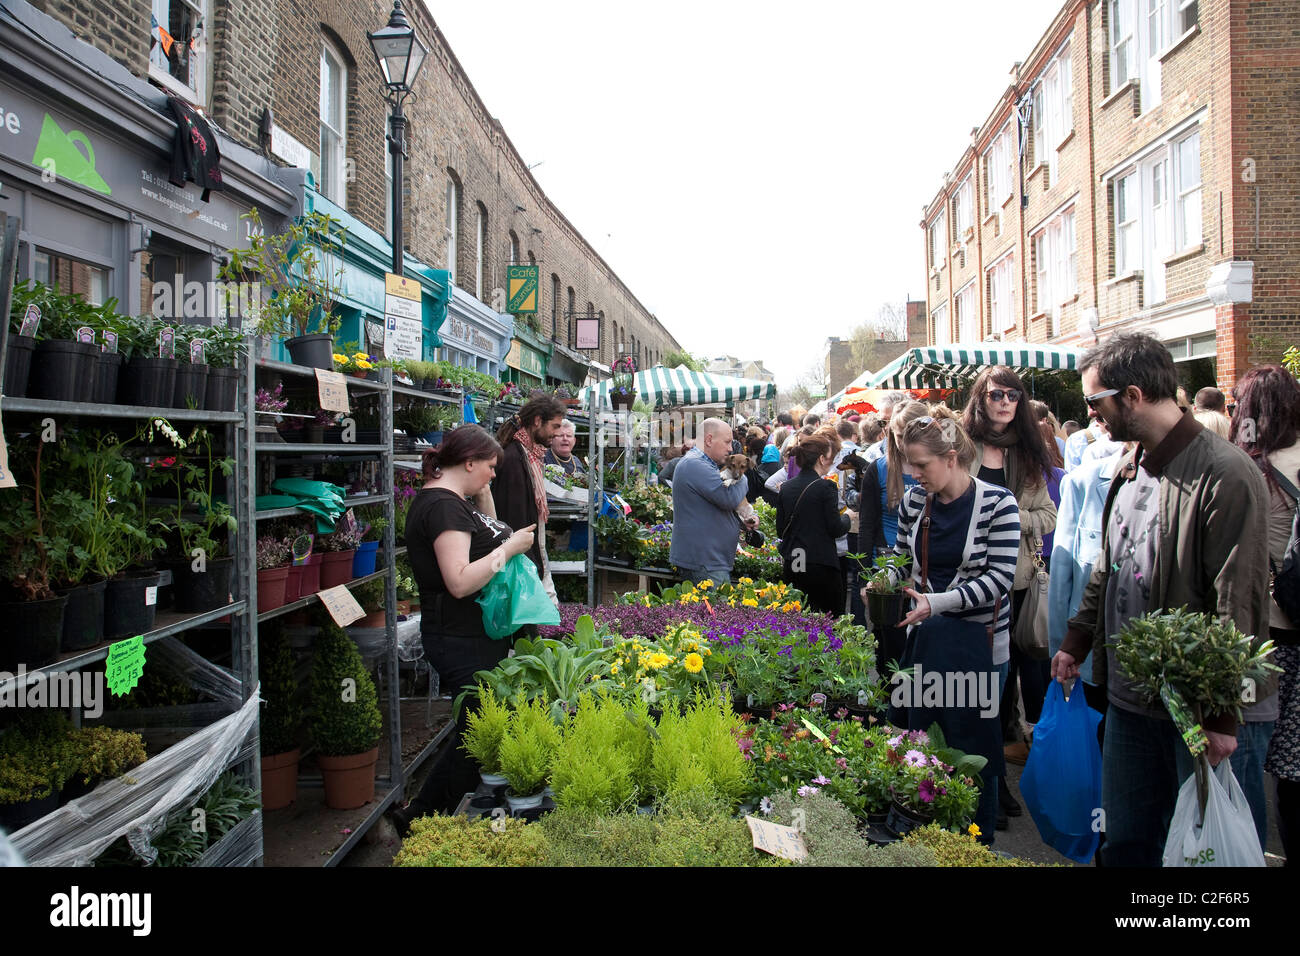 Columbia Road Flower Market located in East London, England, United Kingdom. Photo:Jeff Gilbert - Stock Image